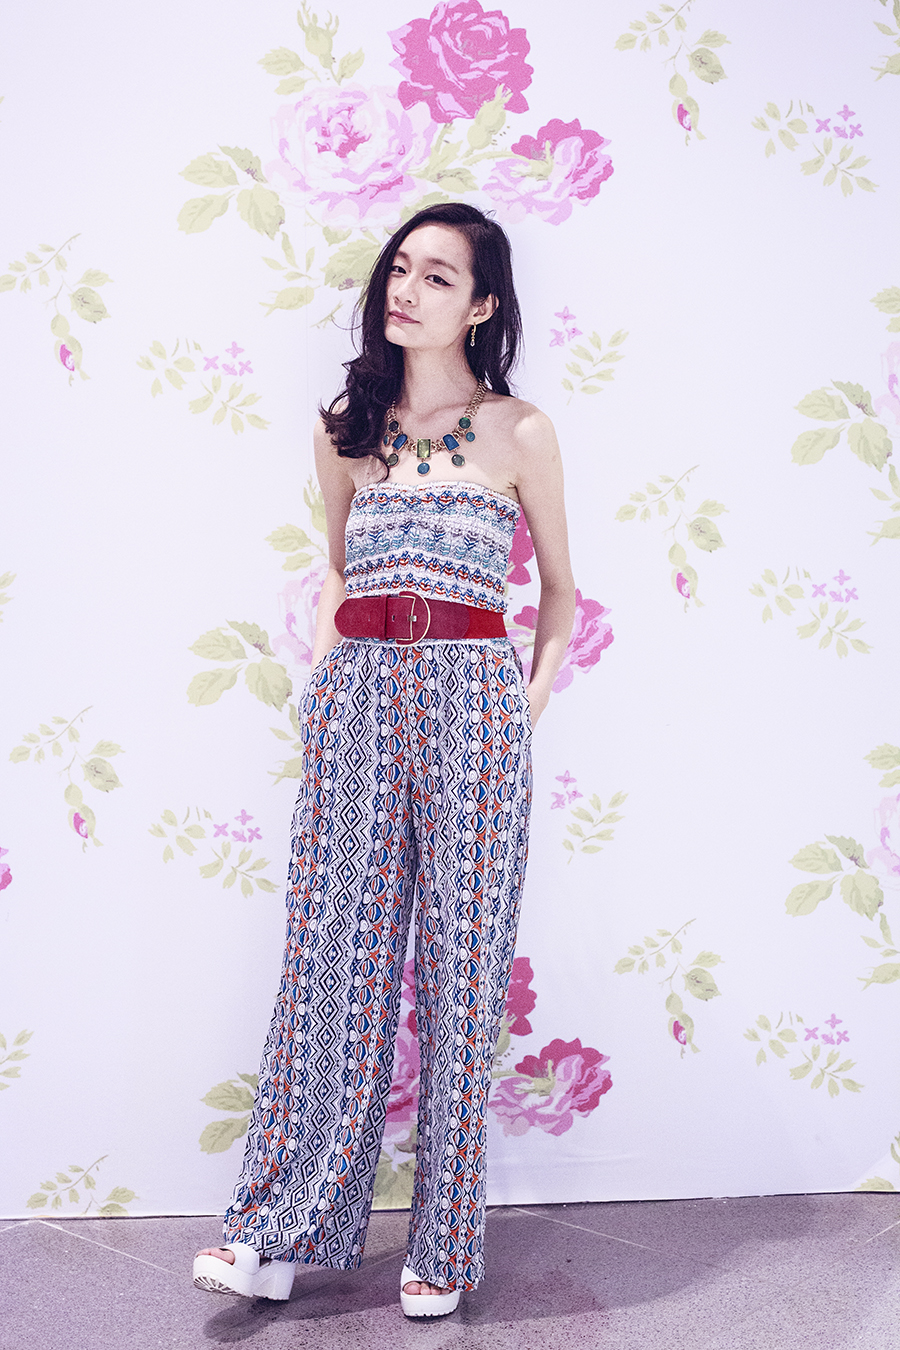 Outfit details for Nine West SS15 Launch: American Rag printed onesie, Accessorize red belt, white platform sandals from Taobao,  Notice Magazine turquoise statement necklace via Chictopia Rewards,.